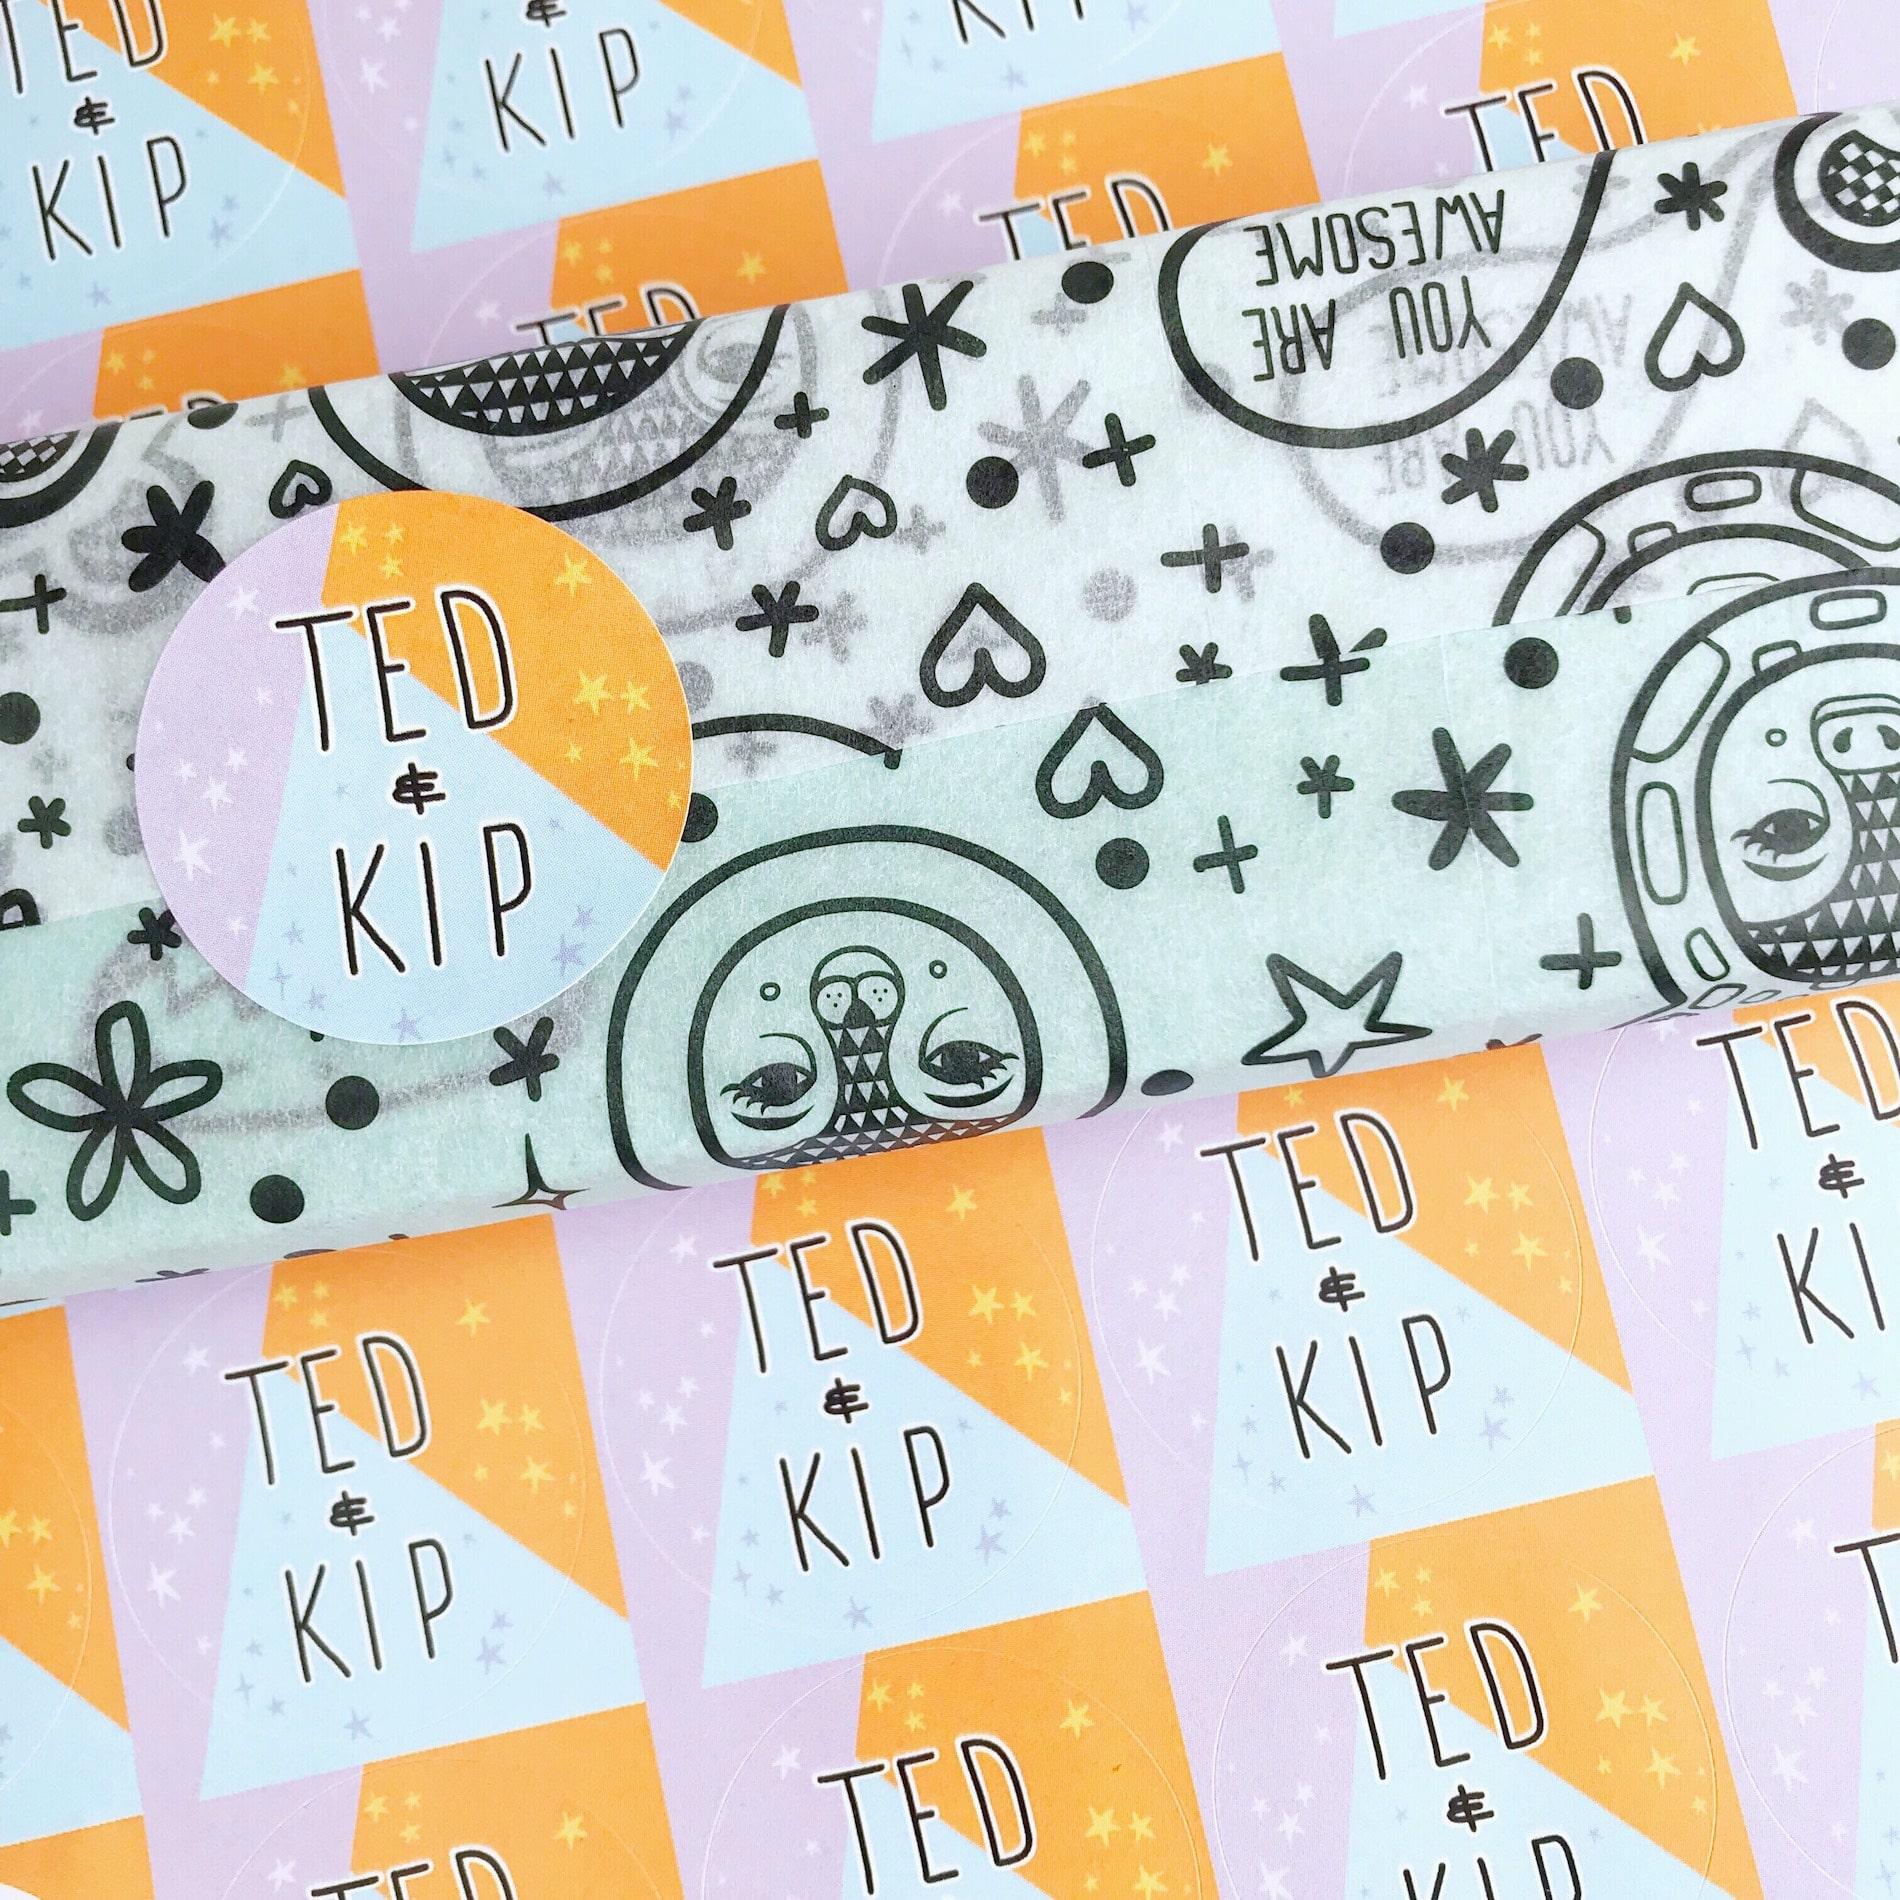 Ted & Kip custom tissue paper and custom sticker